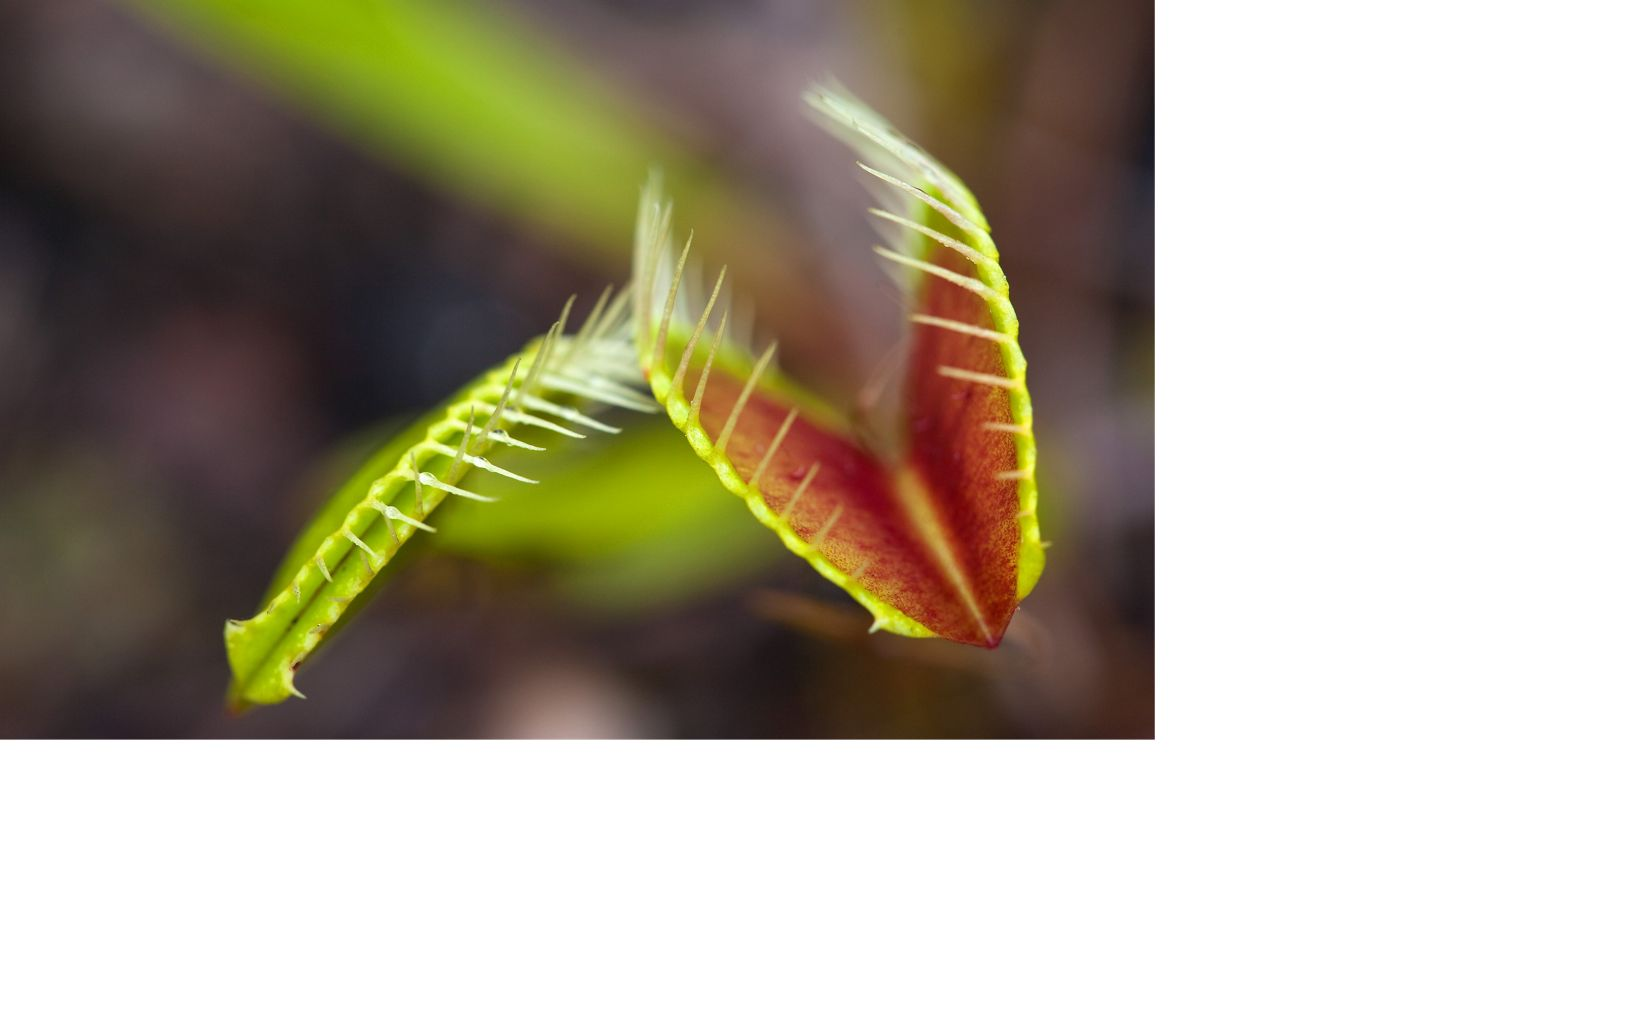 A flytrap in North Carolina's Green Swamp.